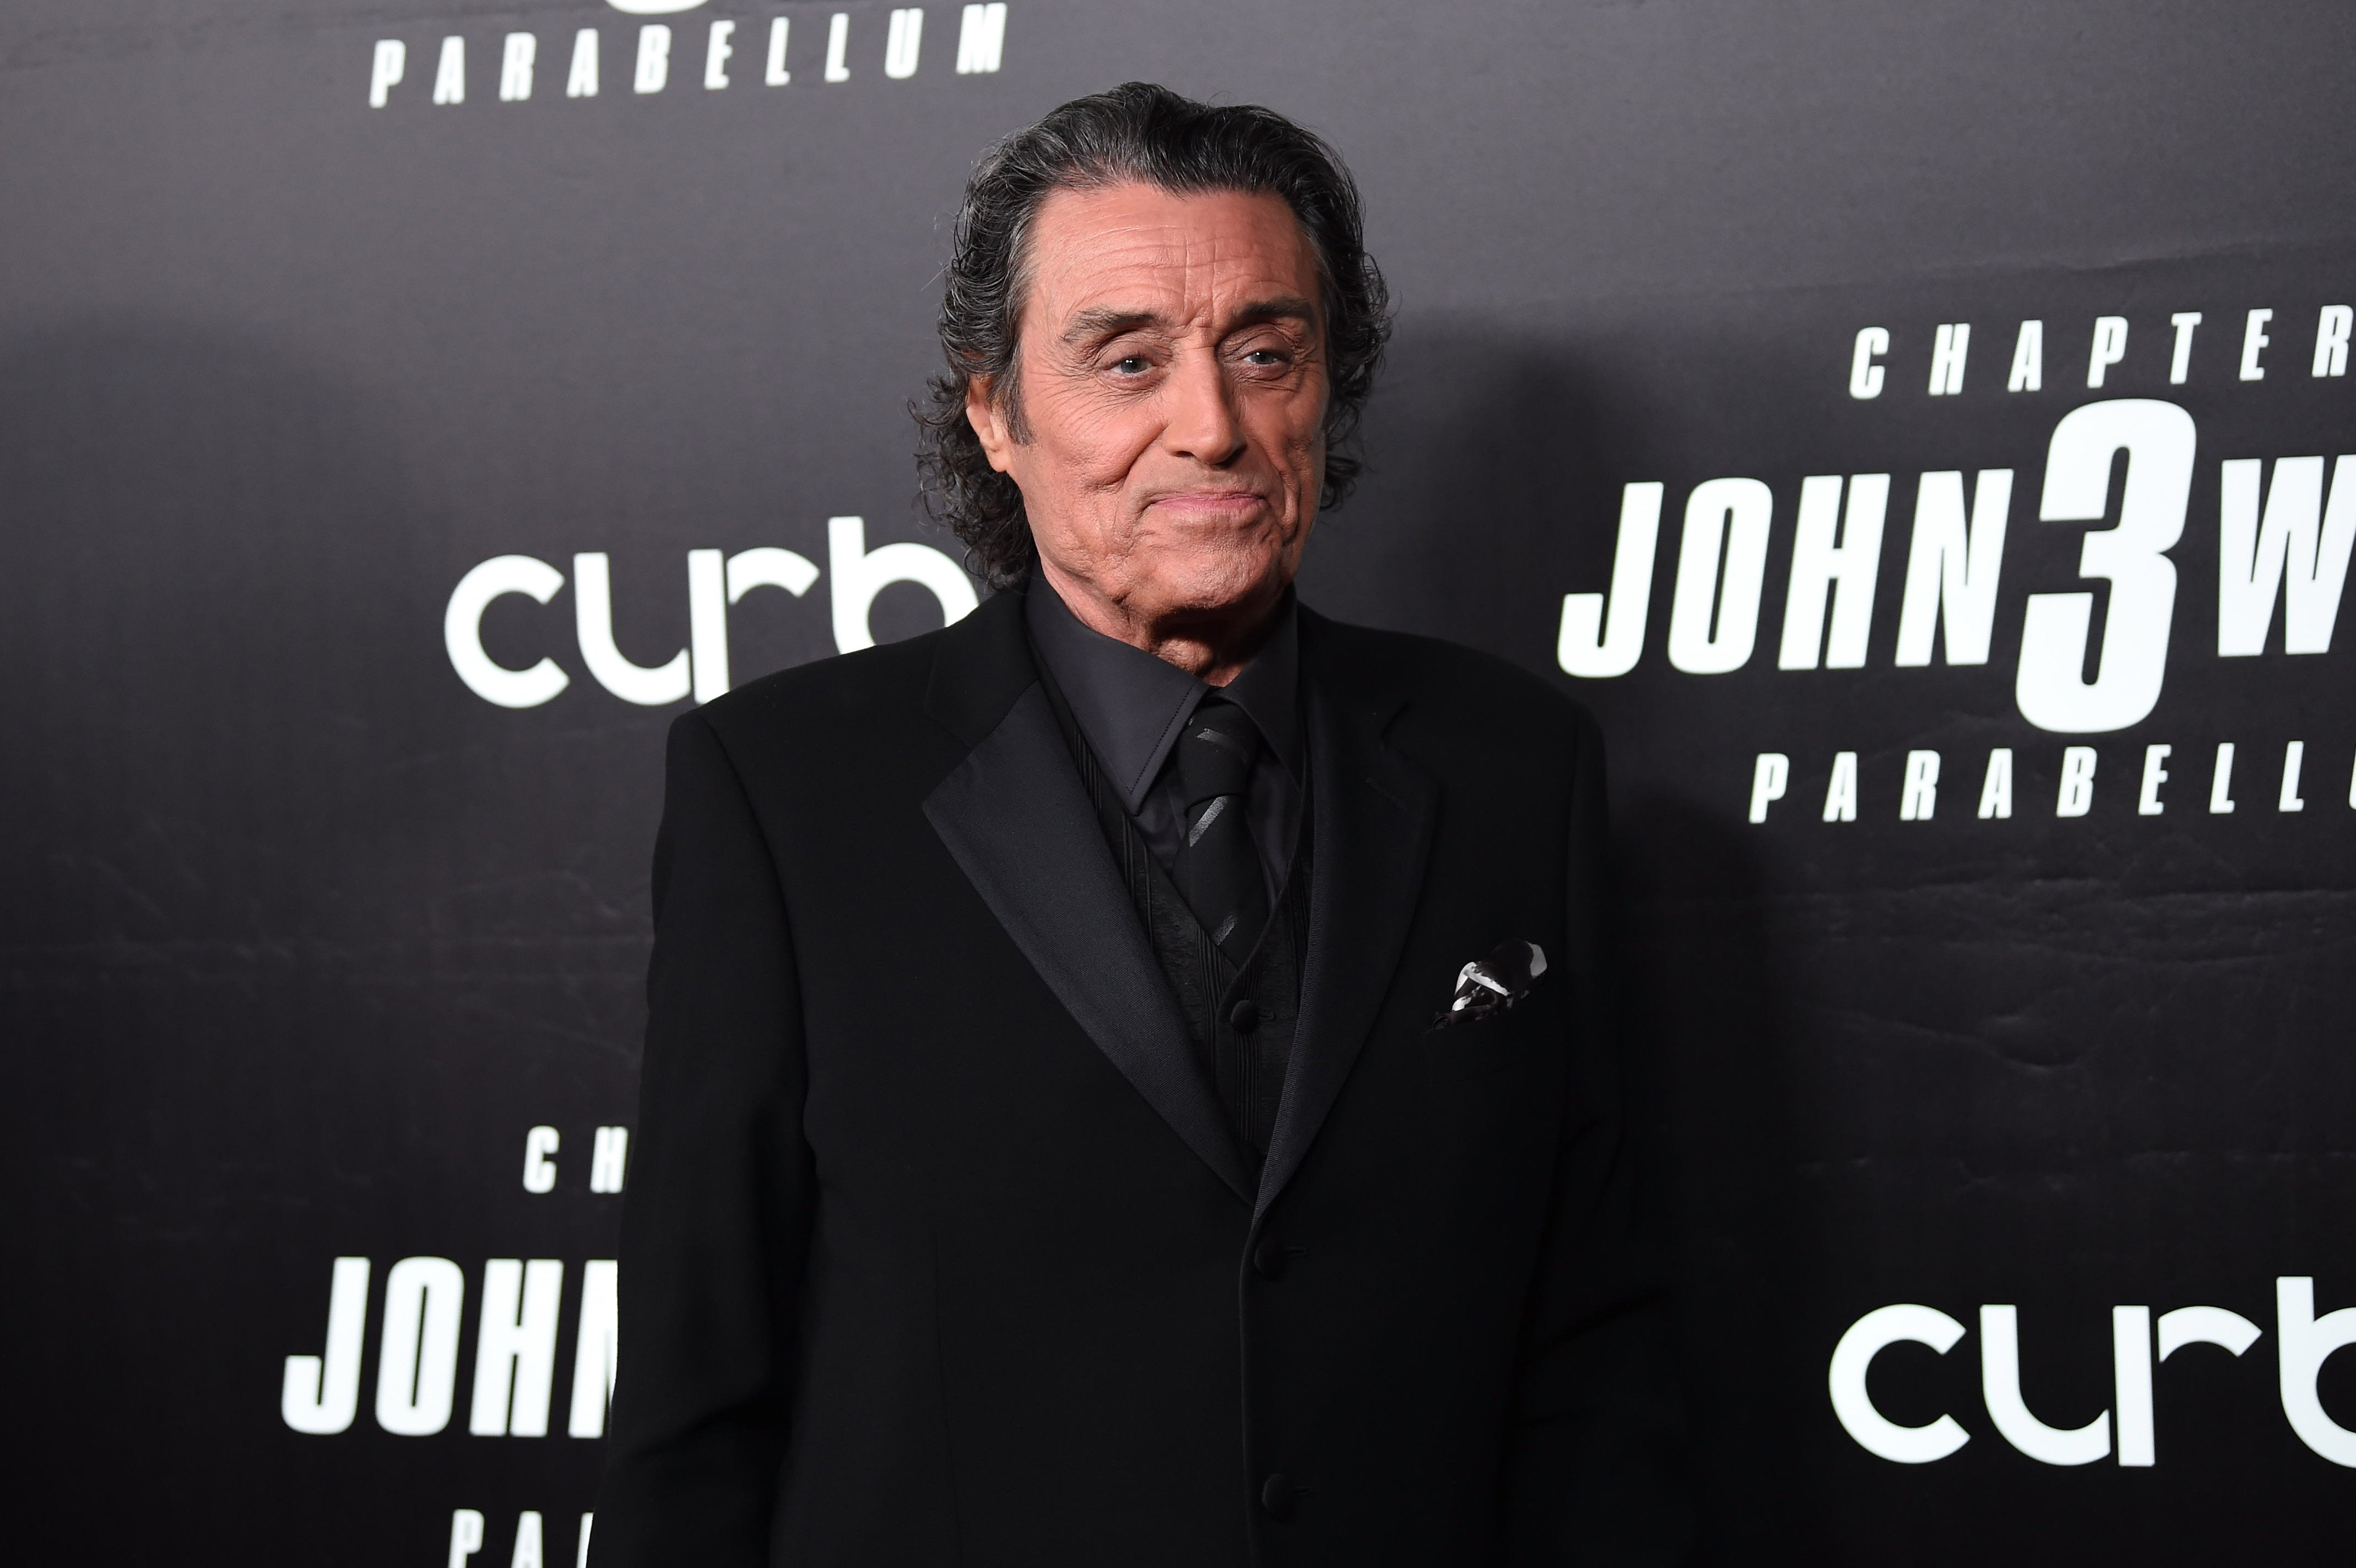 """Ian McShane attends the premiere of """"John Wick: Chapter 3"""" in New York City on May 9, 2019 